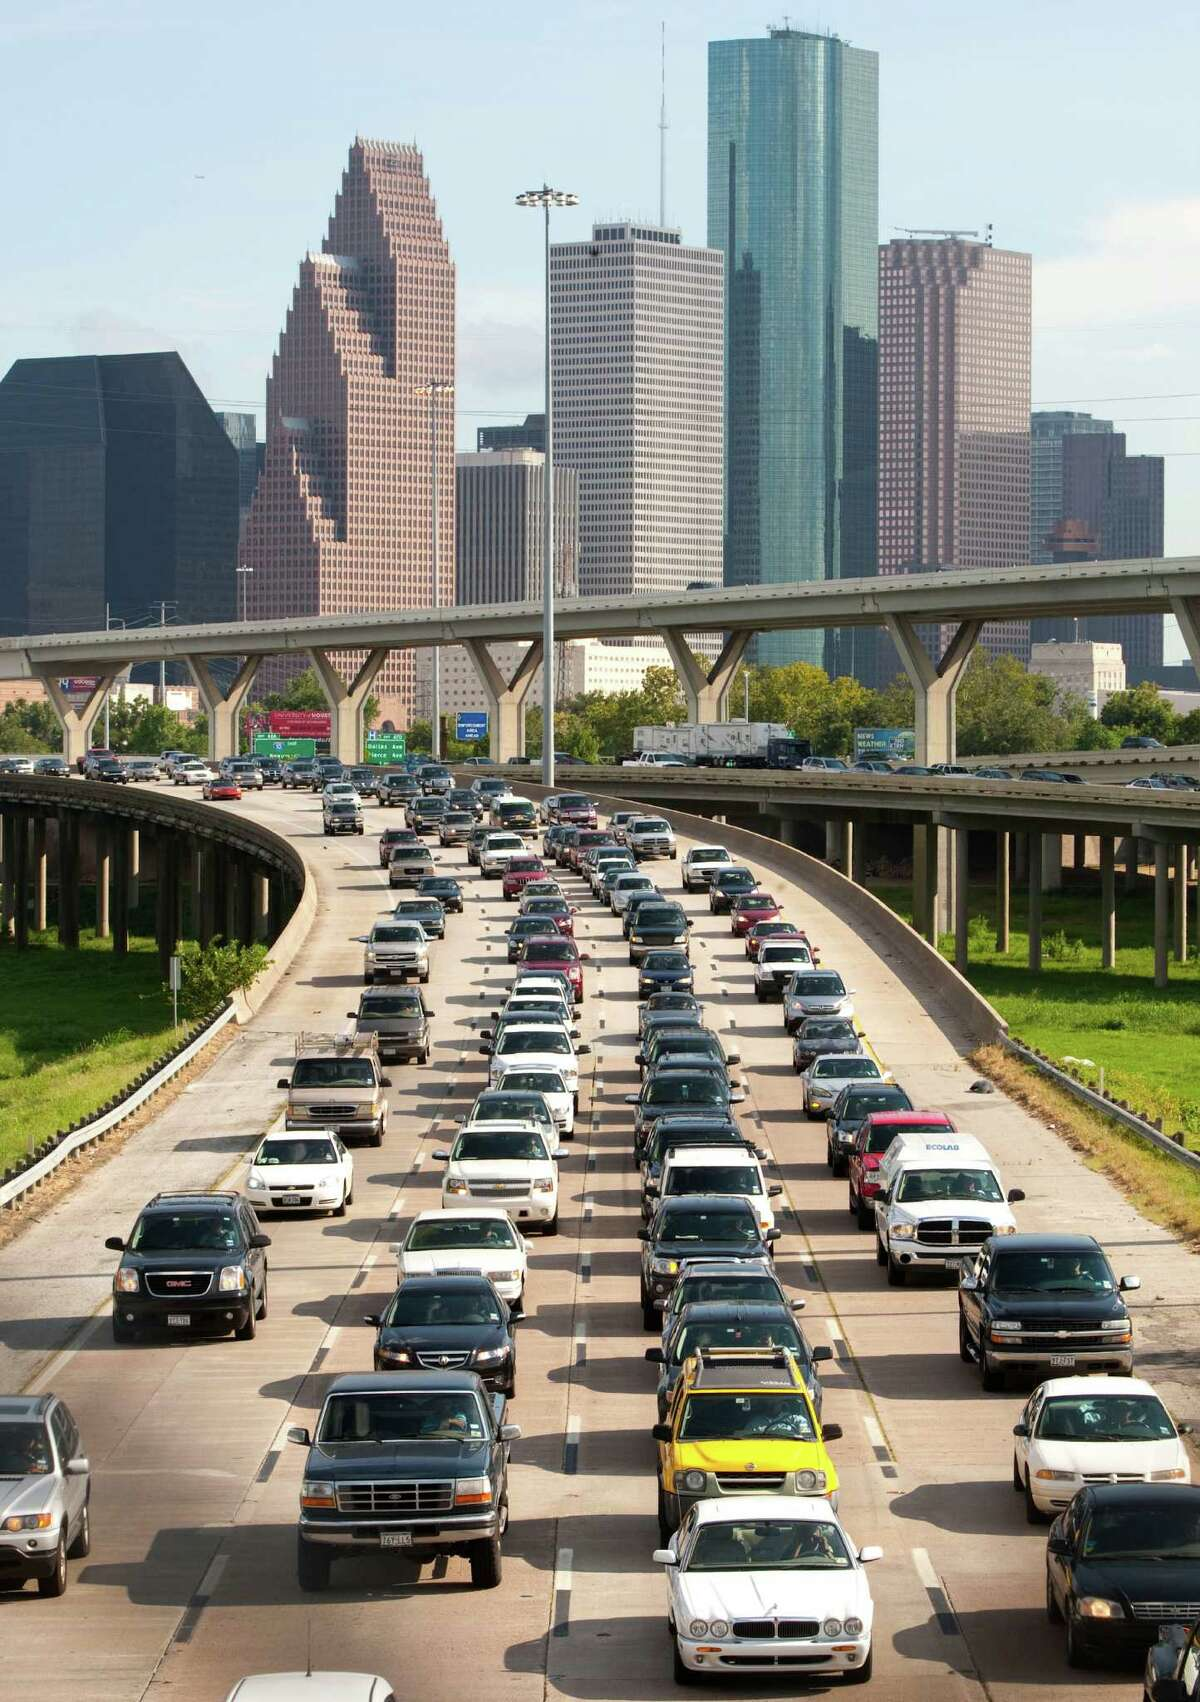 8. Interstate 45-North Freeway Although congestion increases closer to the city, overall the commute from The Woodlands keeps drivers moving at or above 40 miles per hour. However, around 7 a.m. speeds can slip into the upper 30s. Source:Transtar